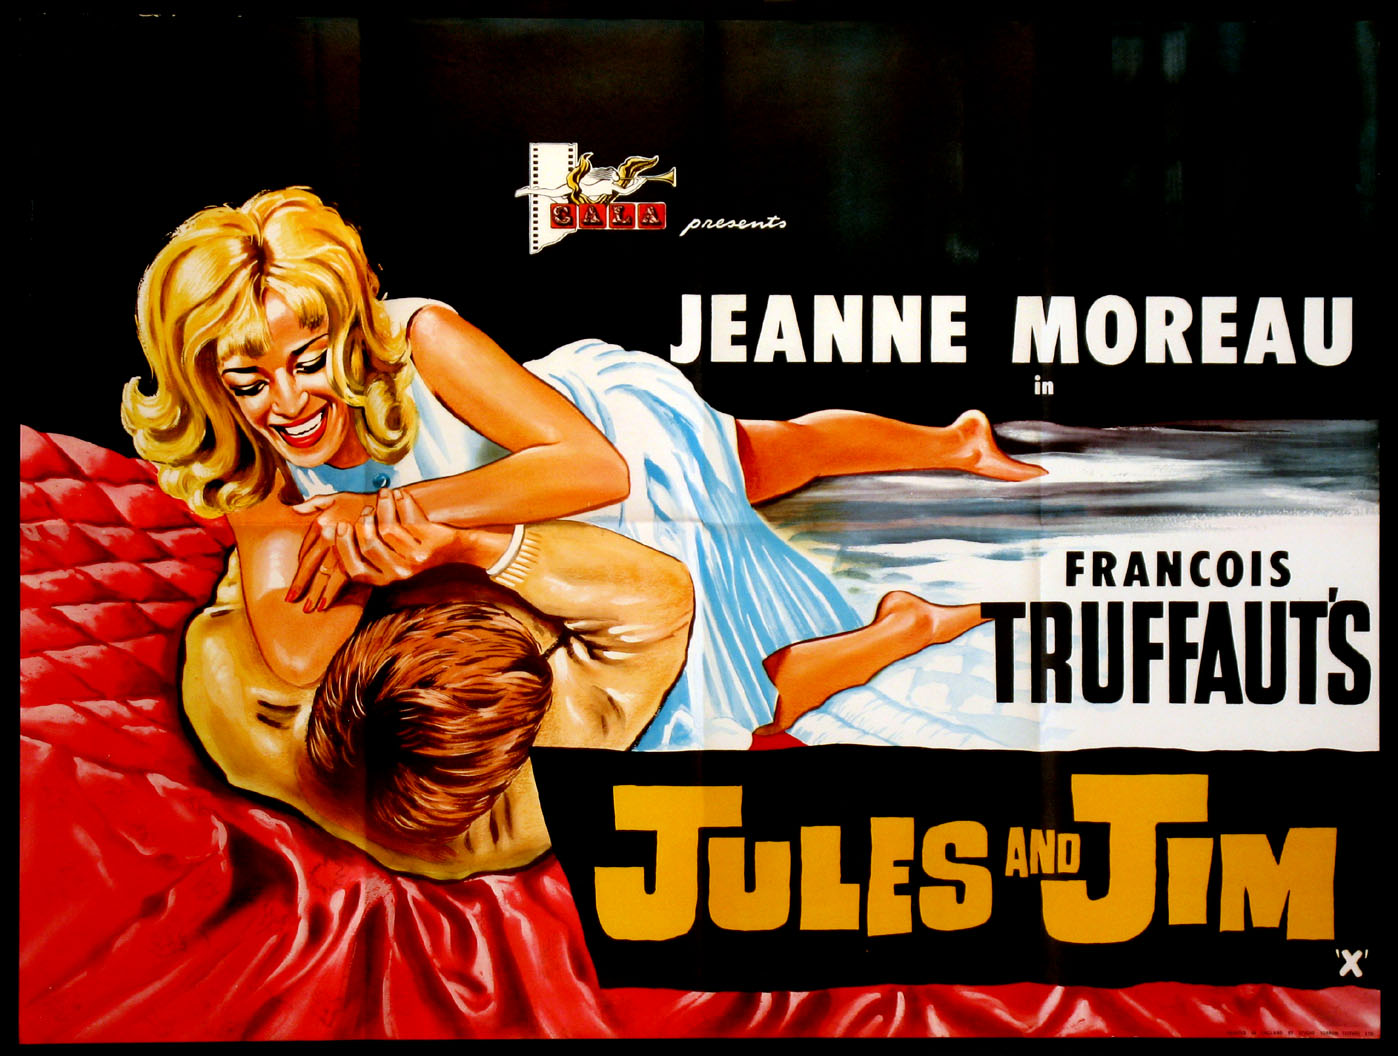 JULES AND JIM (Jules et Jim) @ FilmPosters.com